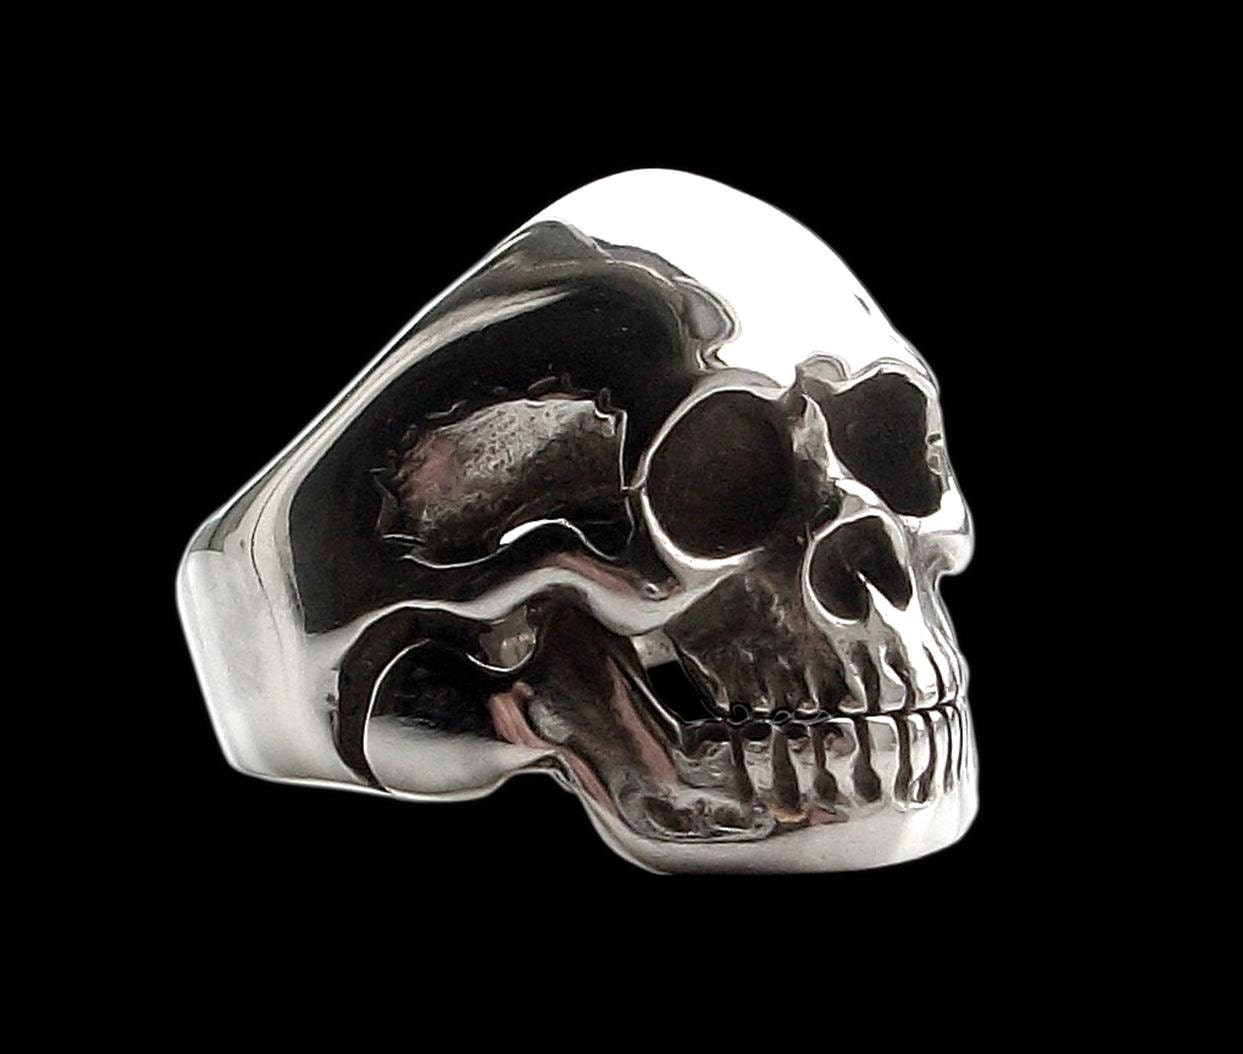 biker get guides punk jewelry find heavy flame gdstar rings metal on skeleton cheap steel skull stainless deals quotations shopping men